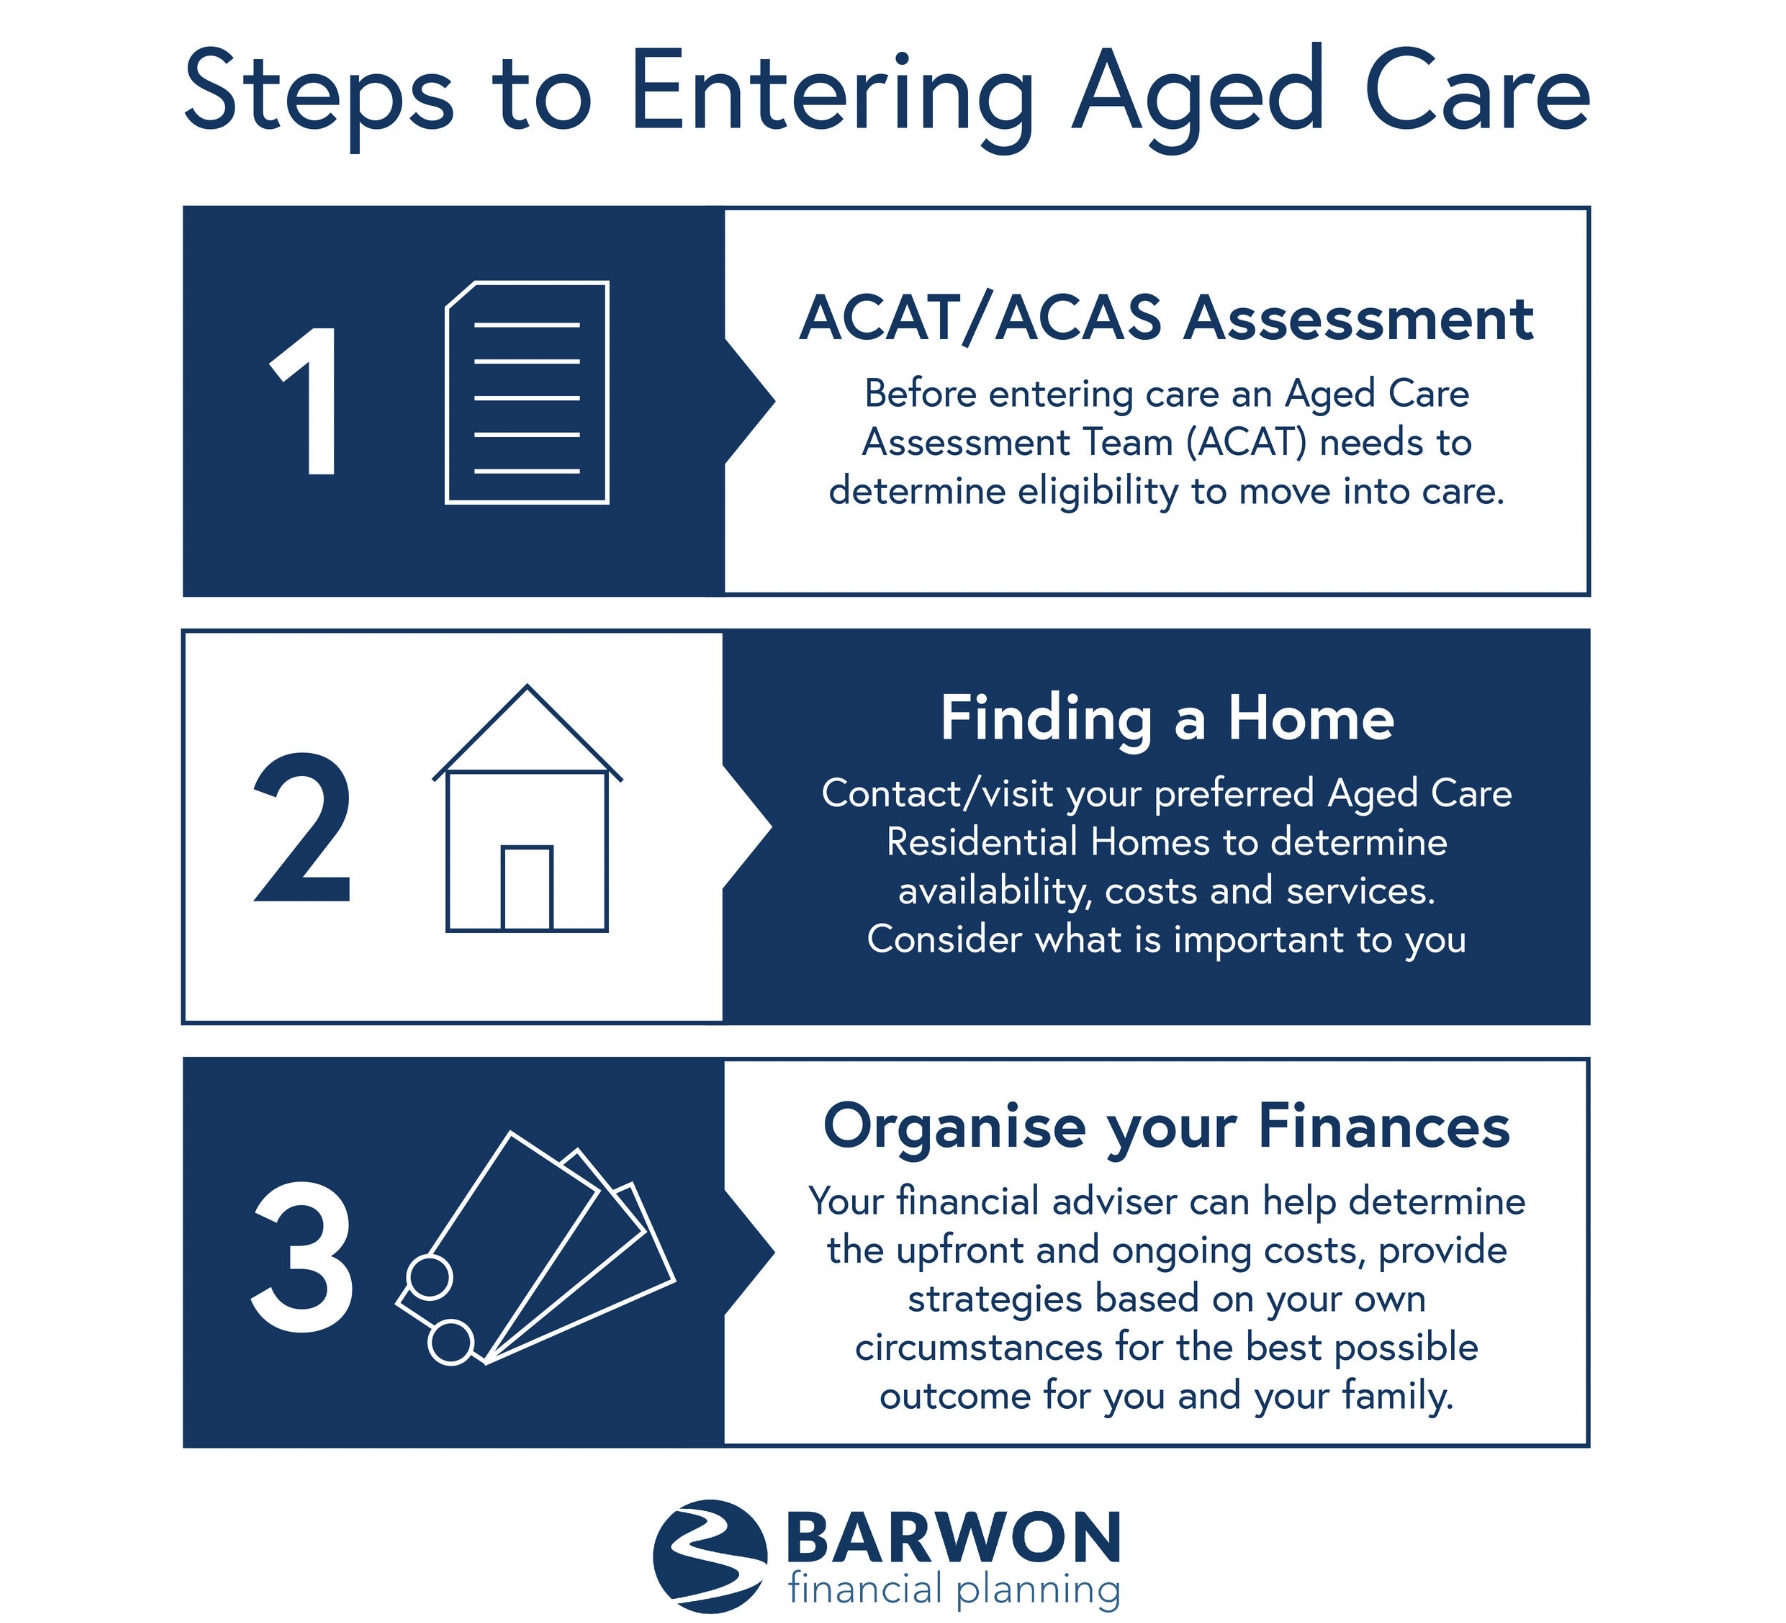 barwon_financial_planning_steps-to-entering-aged-care-01.jpg